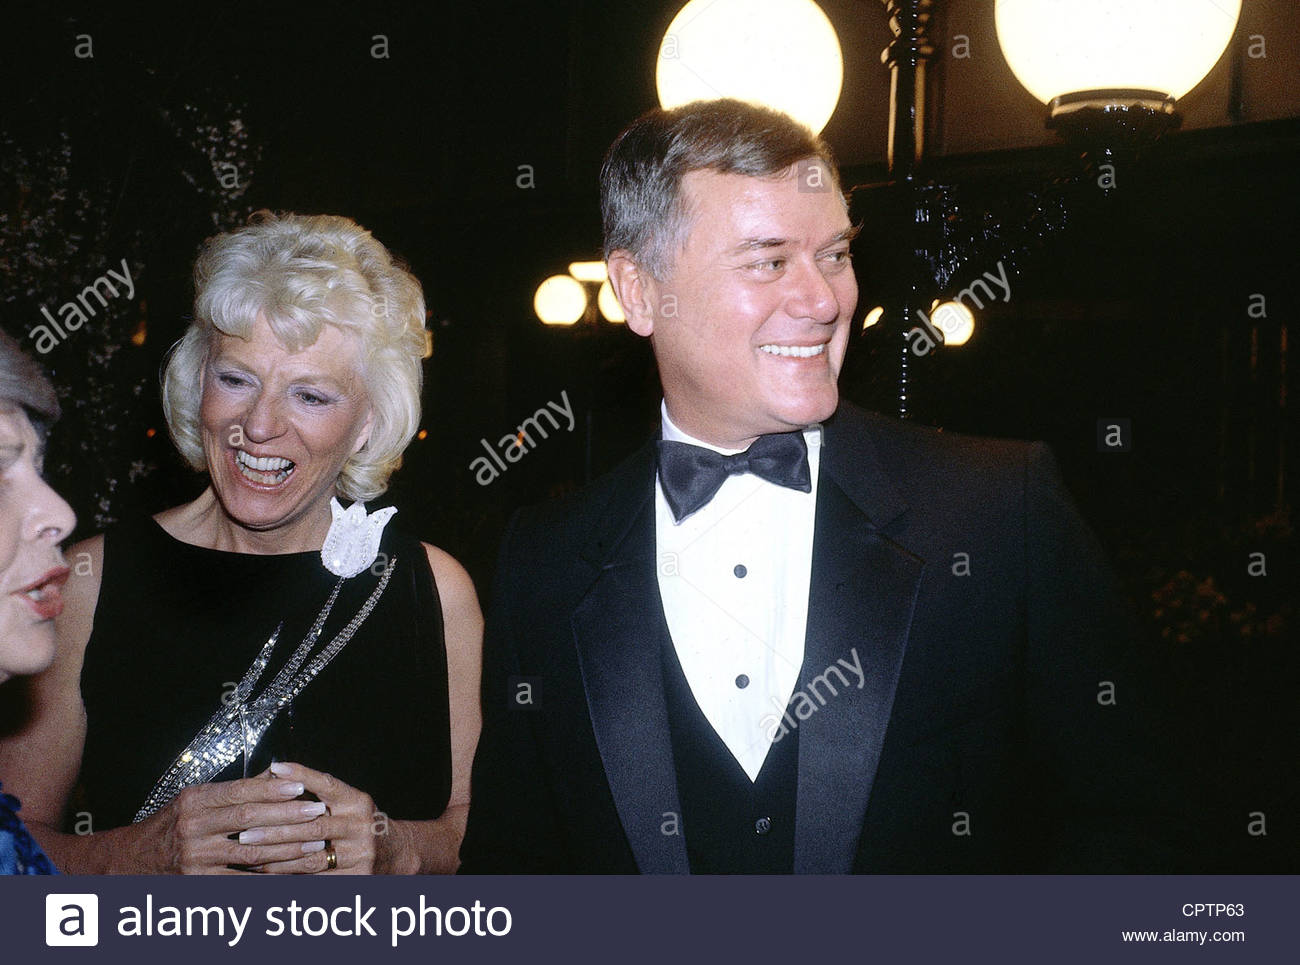 Hagman, Larry, * 21.9.1931, US actor, portrait, with his wife Maj Axelsson, at a party, Munich, 1982, dinner jacket - Stock Image